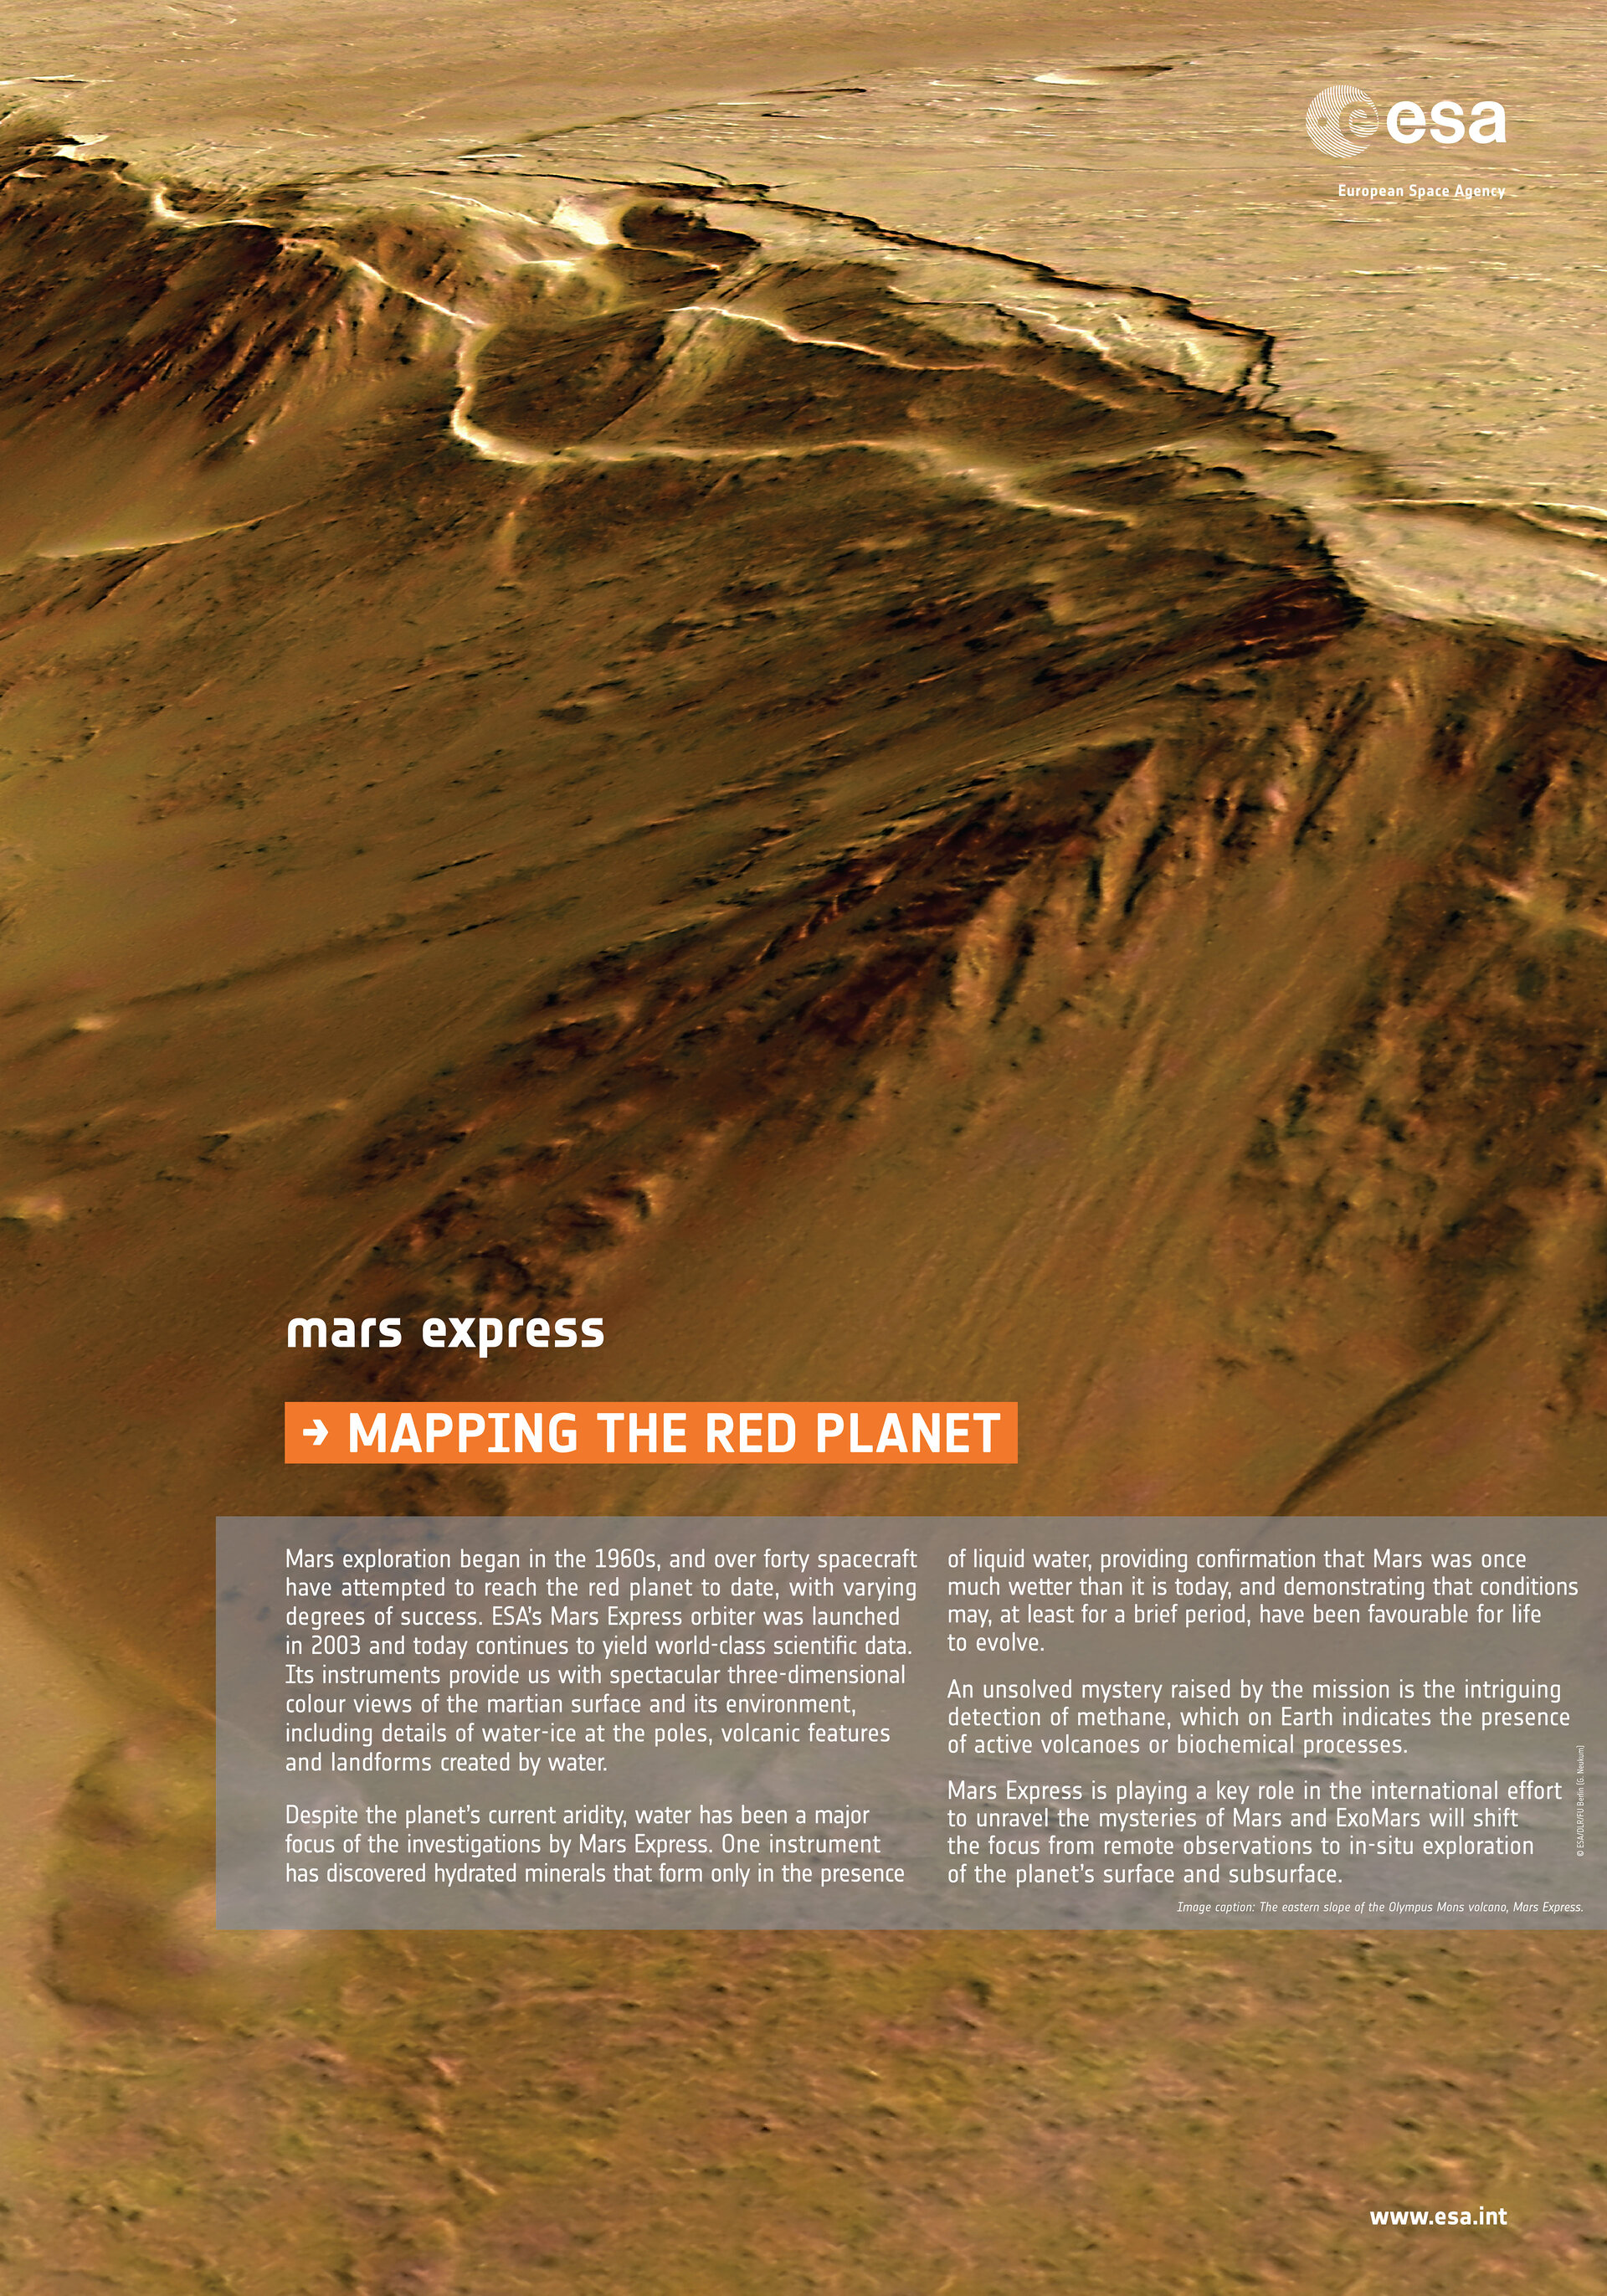 The eastern slope of the Olympus Mons volcano, Mars Express